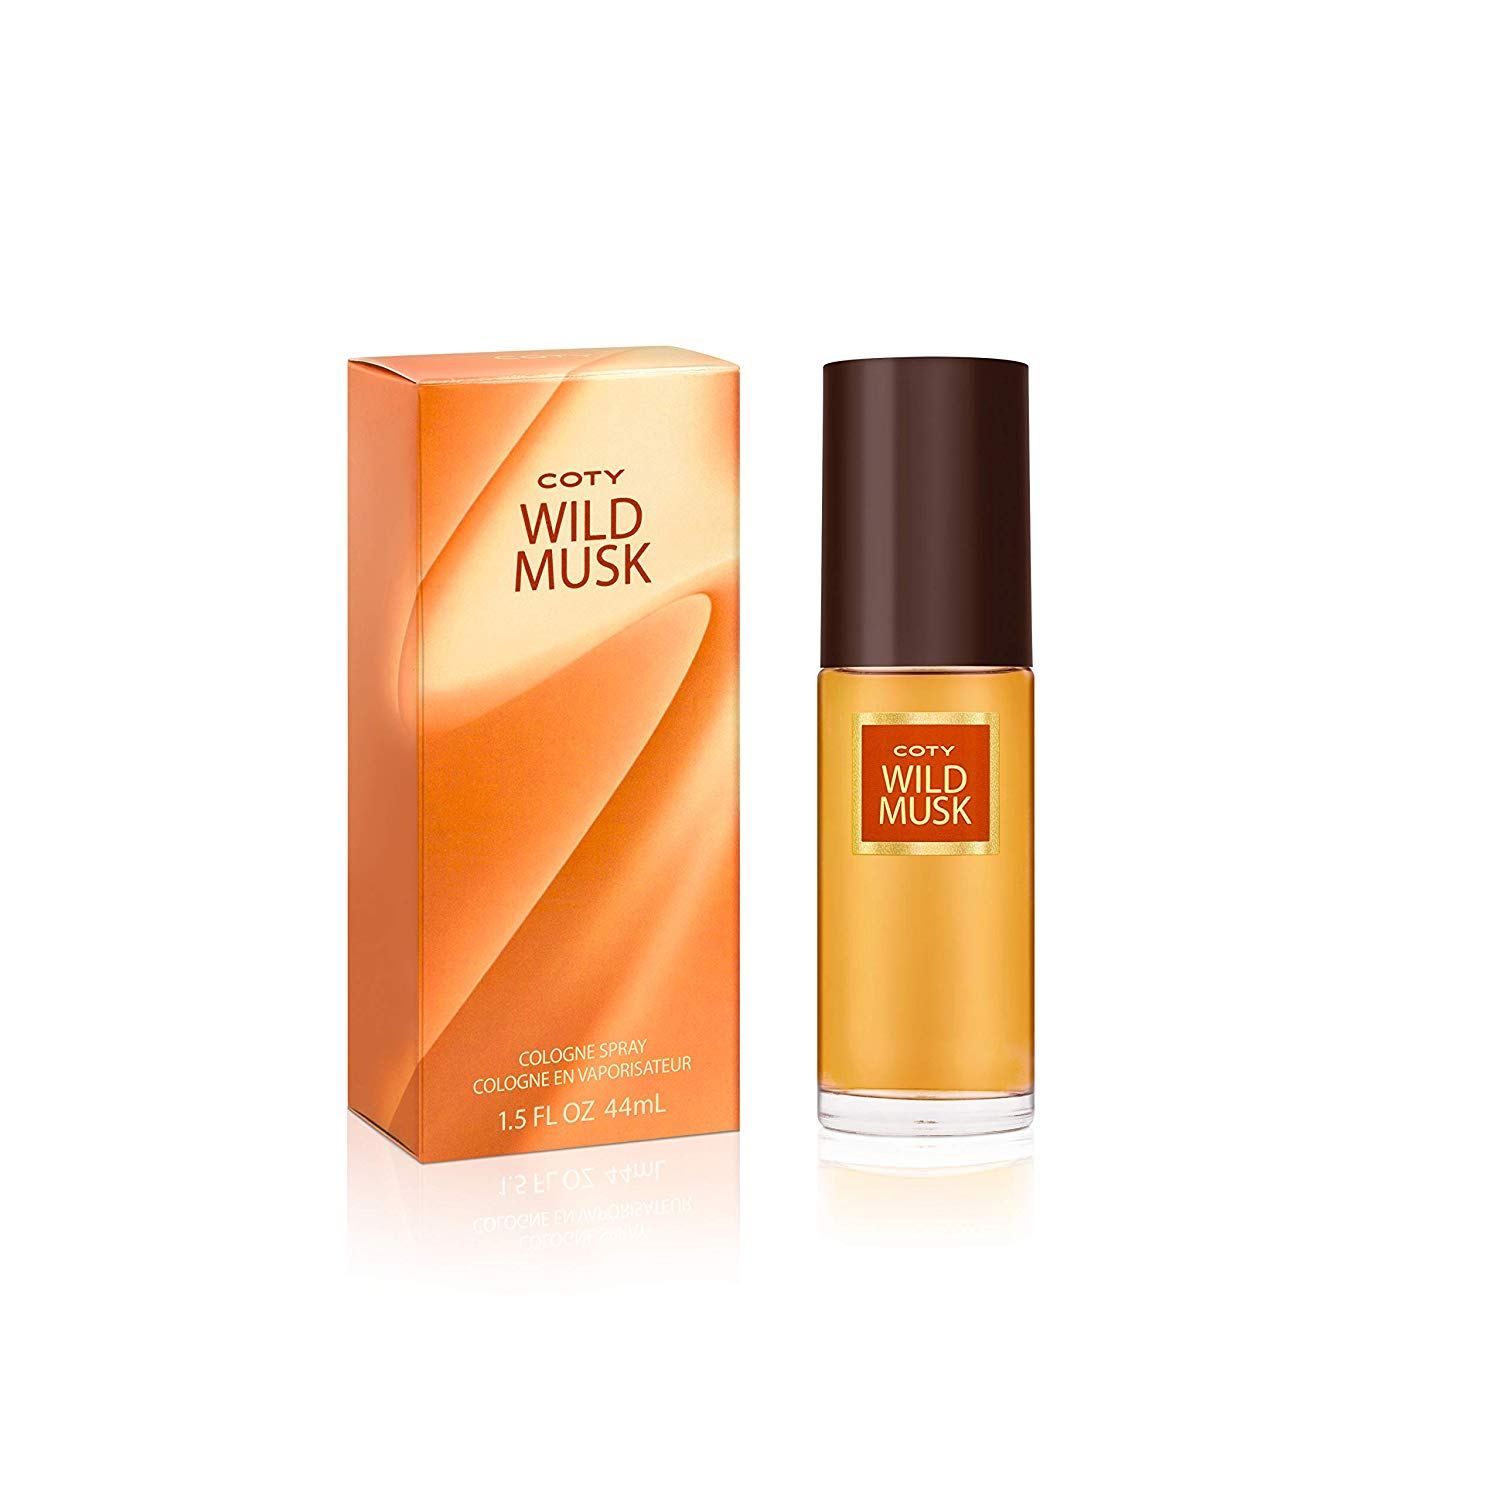 Coty Wild Musk Cologne